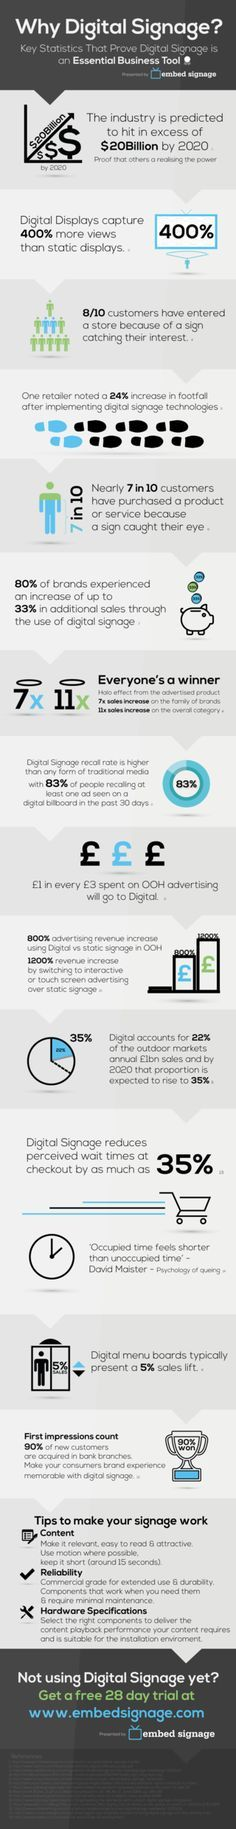 Embed Signage infographic on digital signage